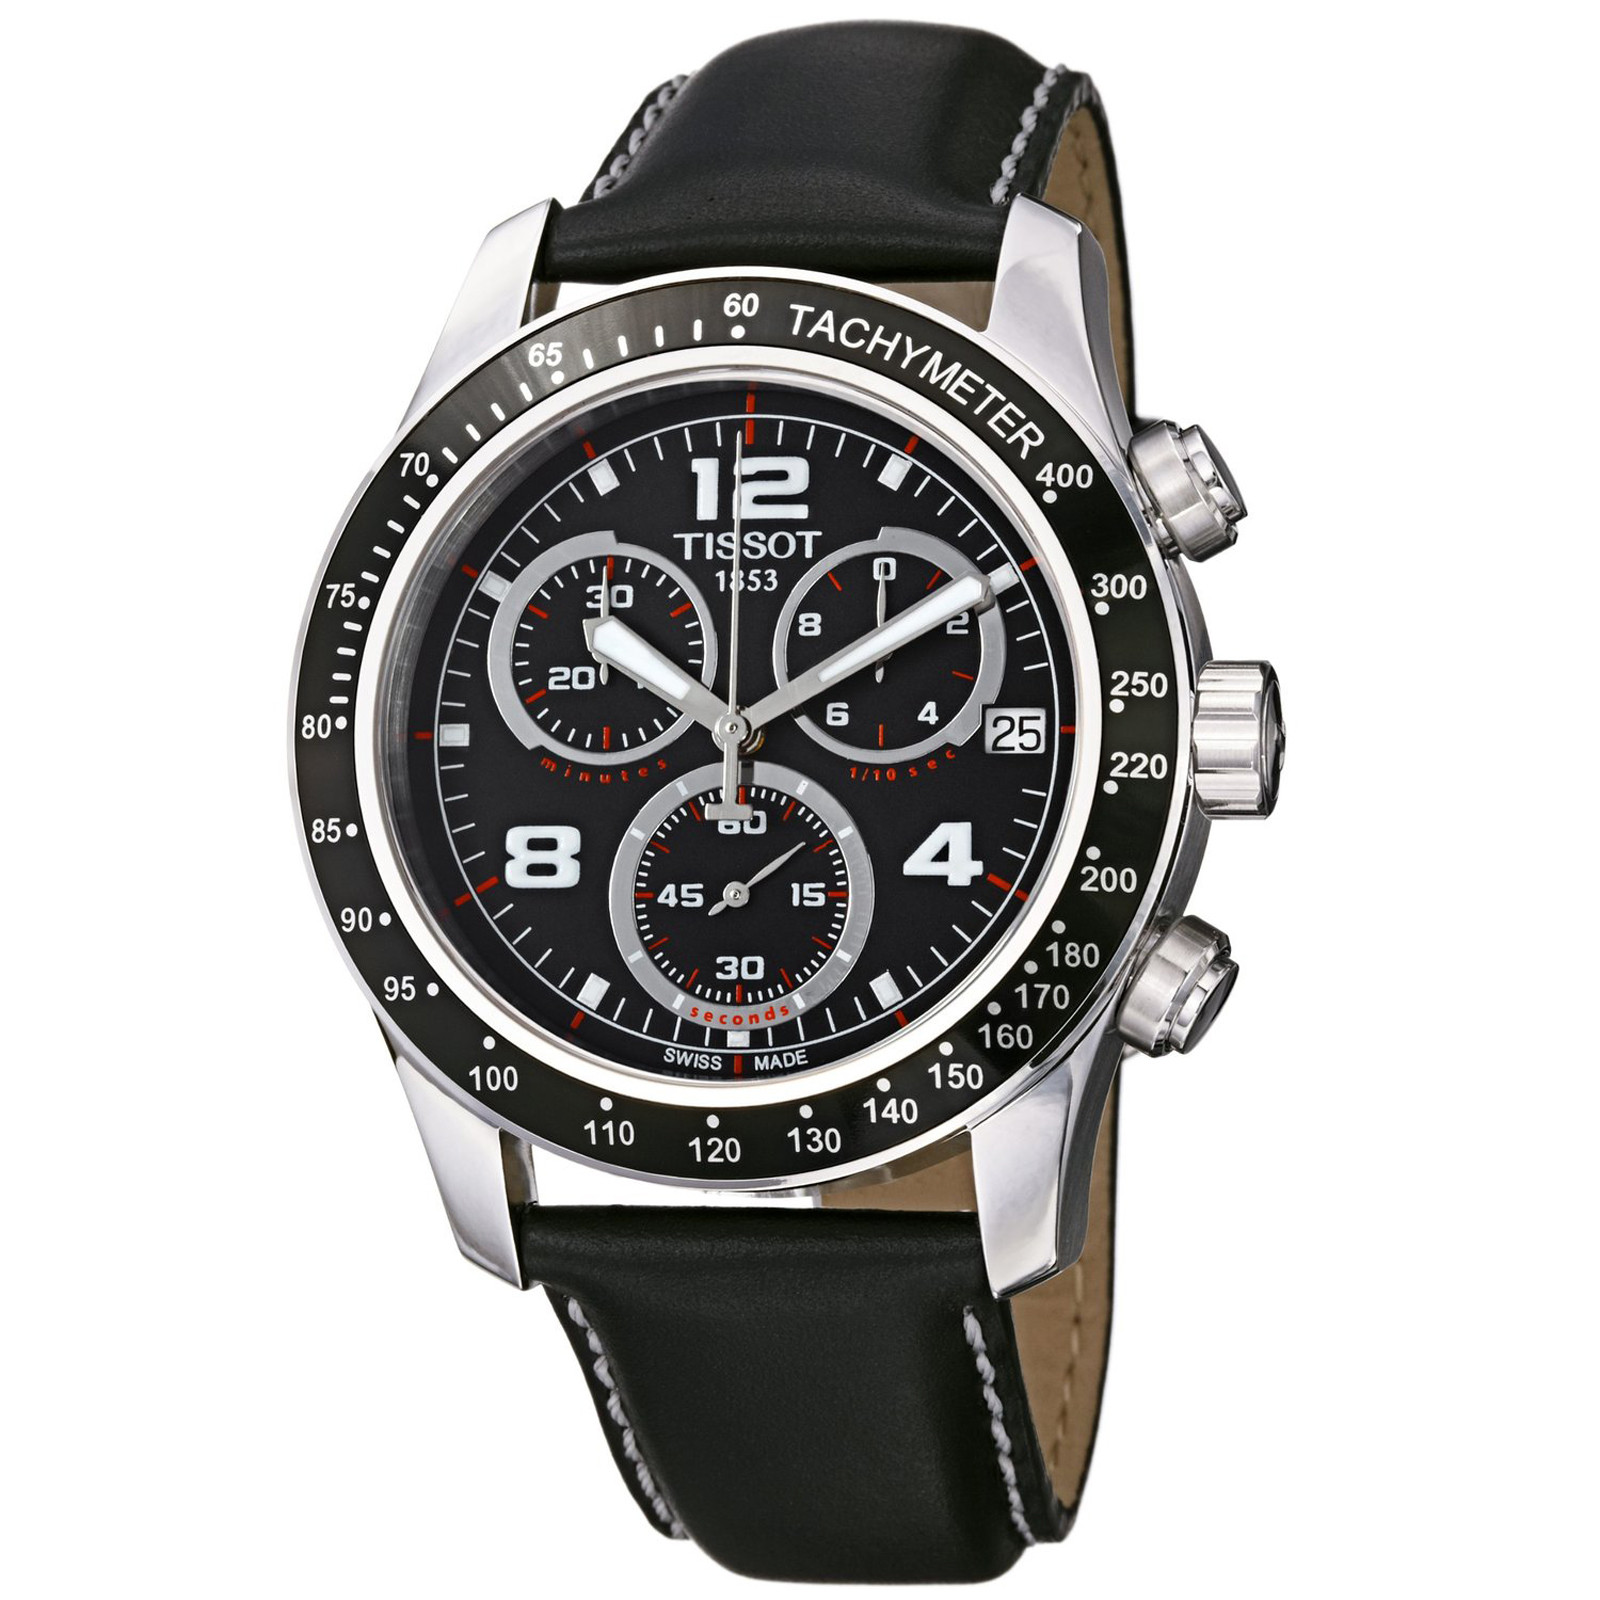 New Tissot V8 Chrono